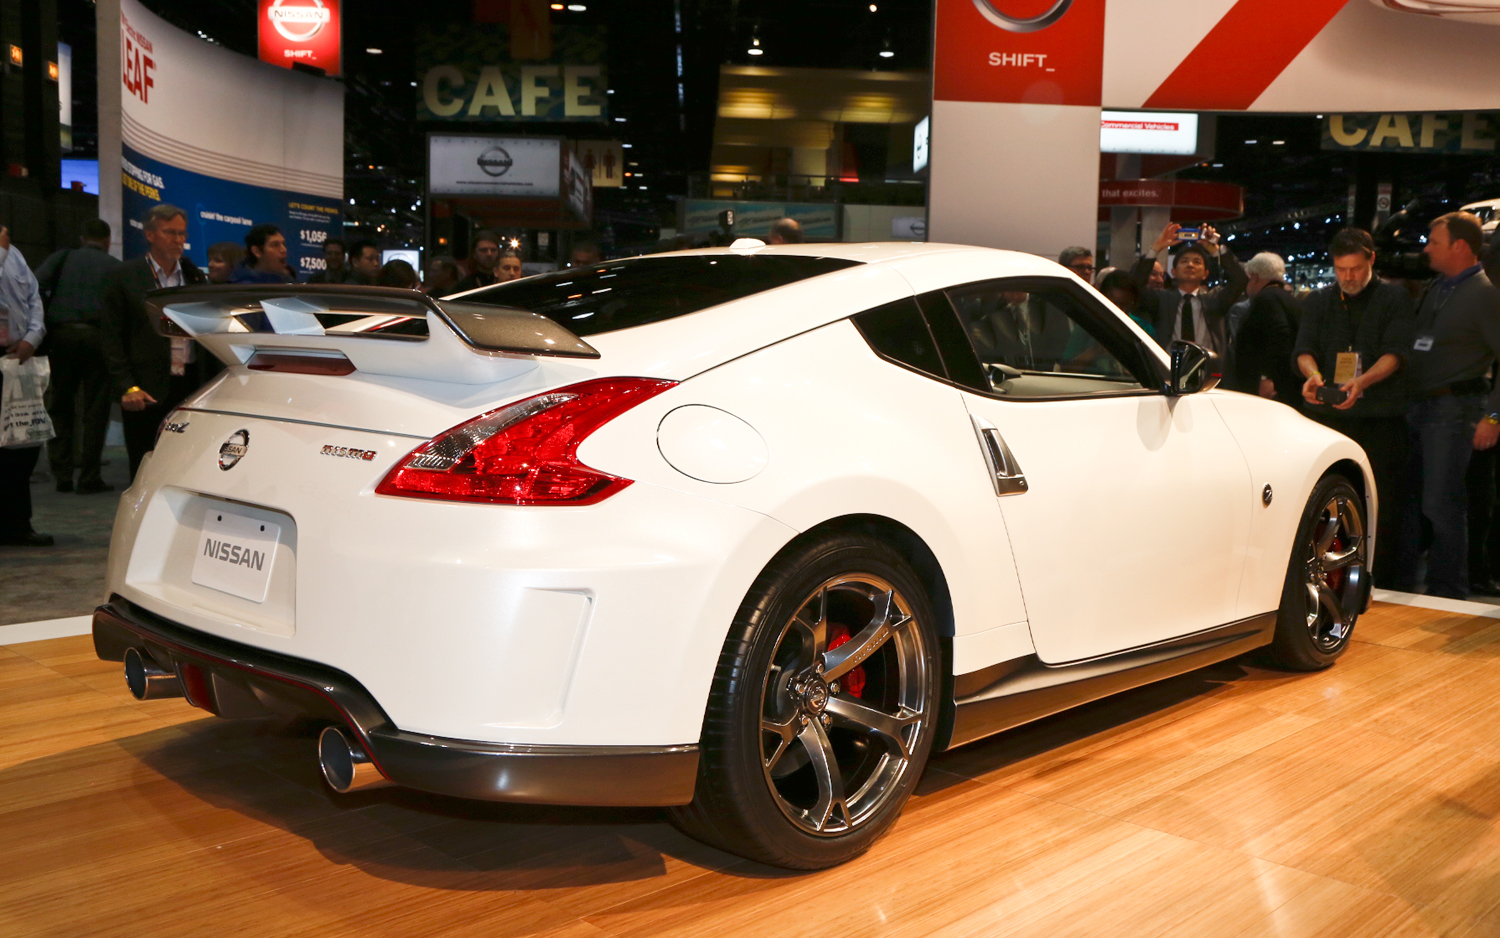 2014 Nissan 370Z Nismo Backgrounds, Compatible - PC, Mobile, Gadgets| 1500x938 px